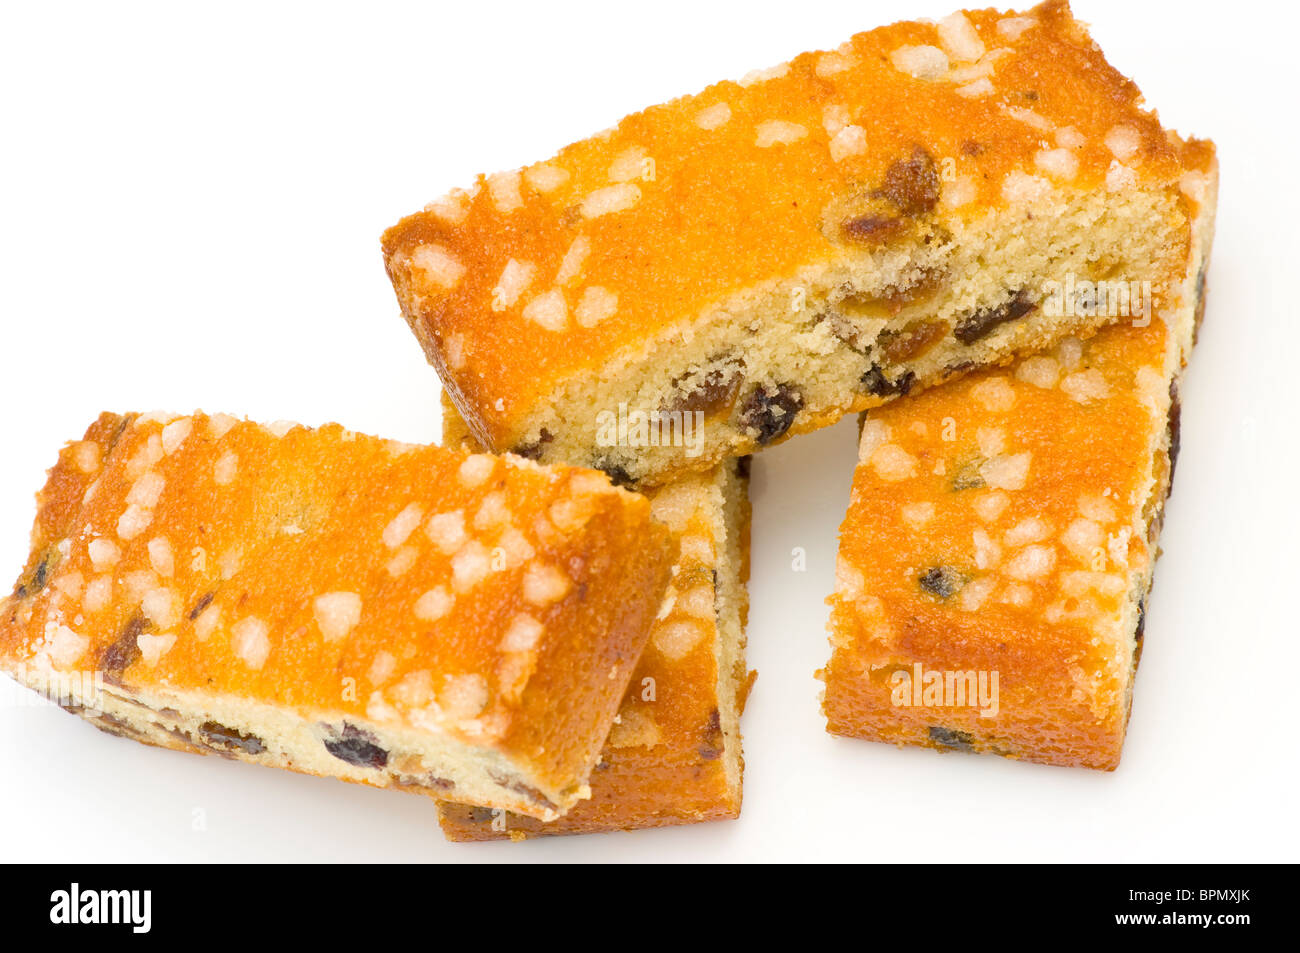 Country Cakes - Stock Image